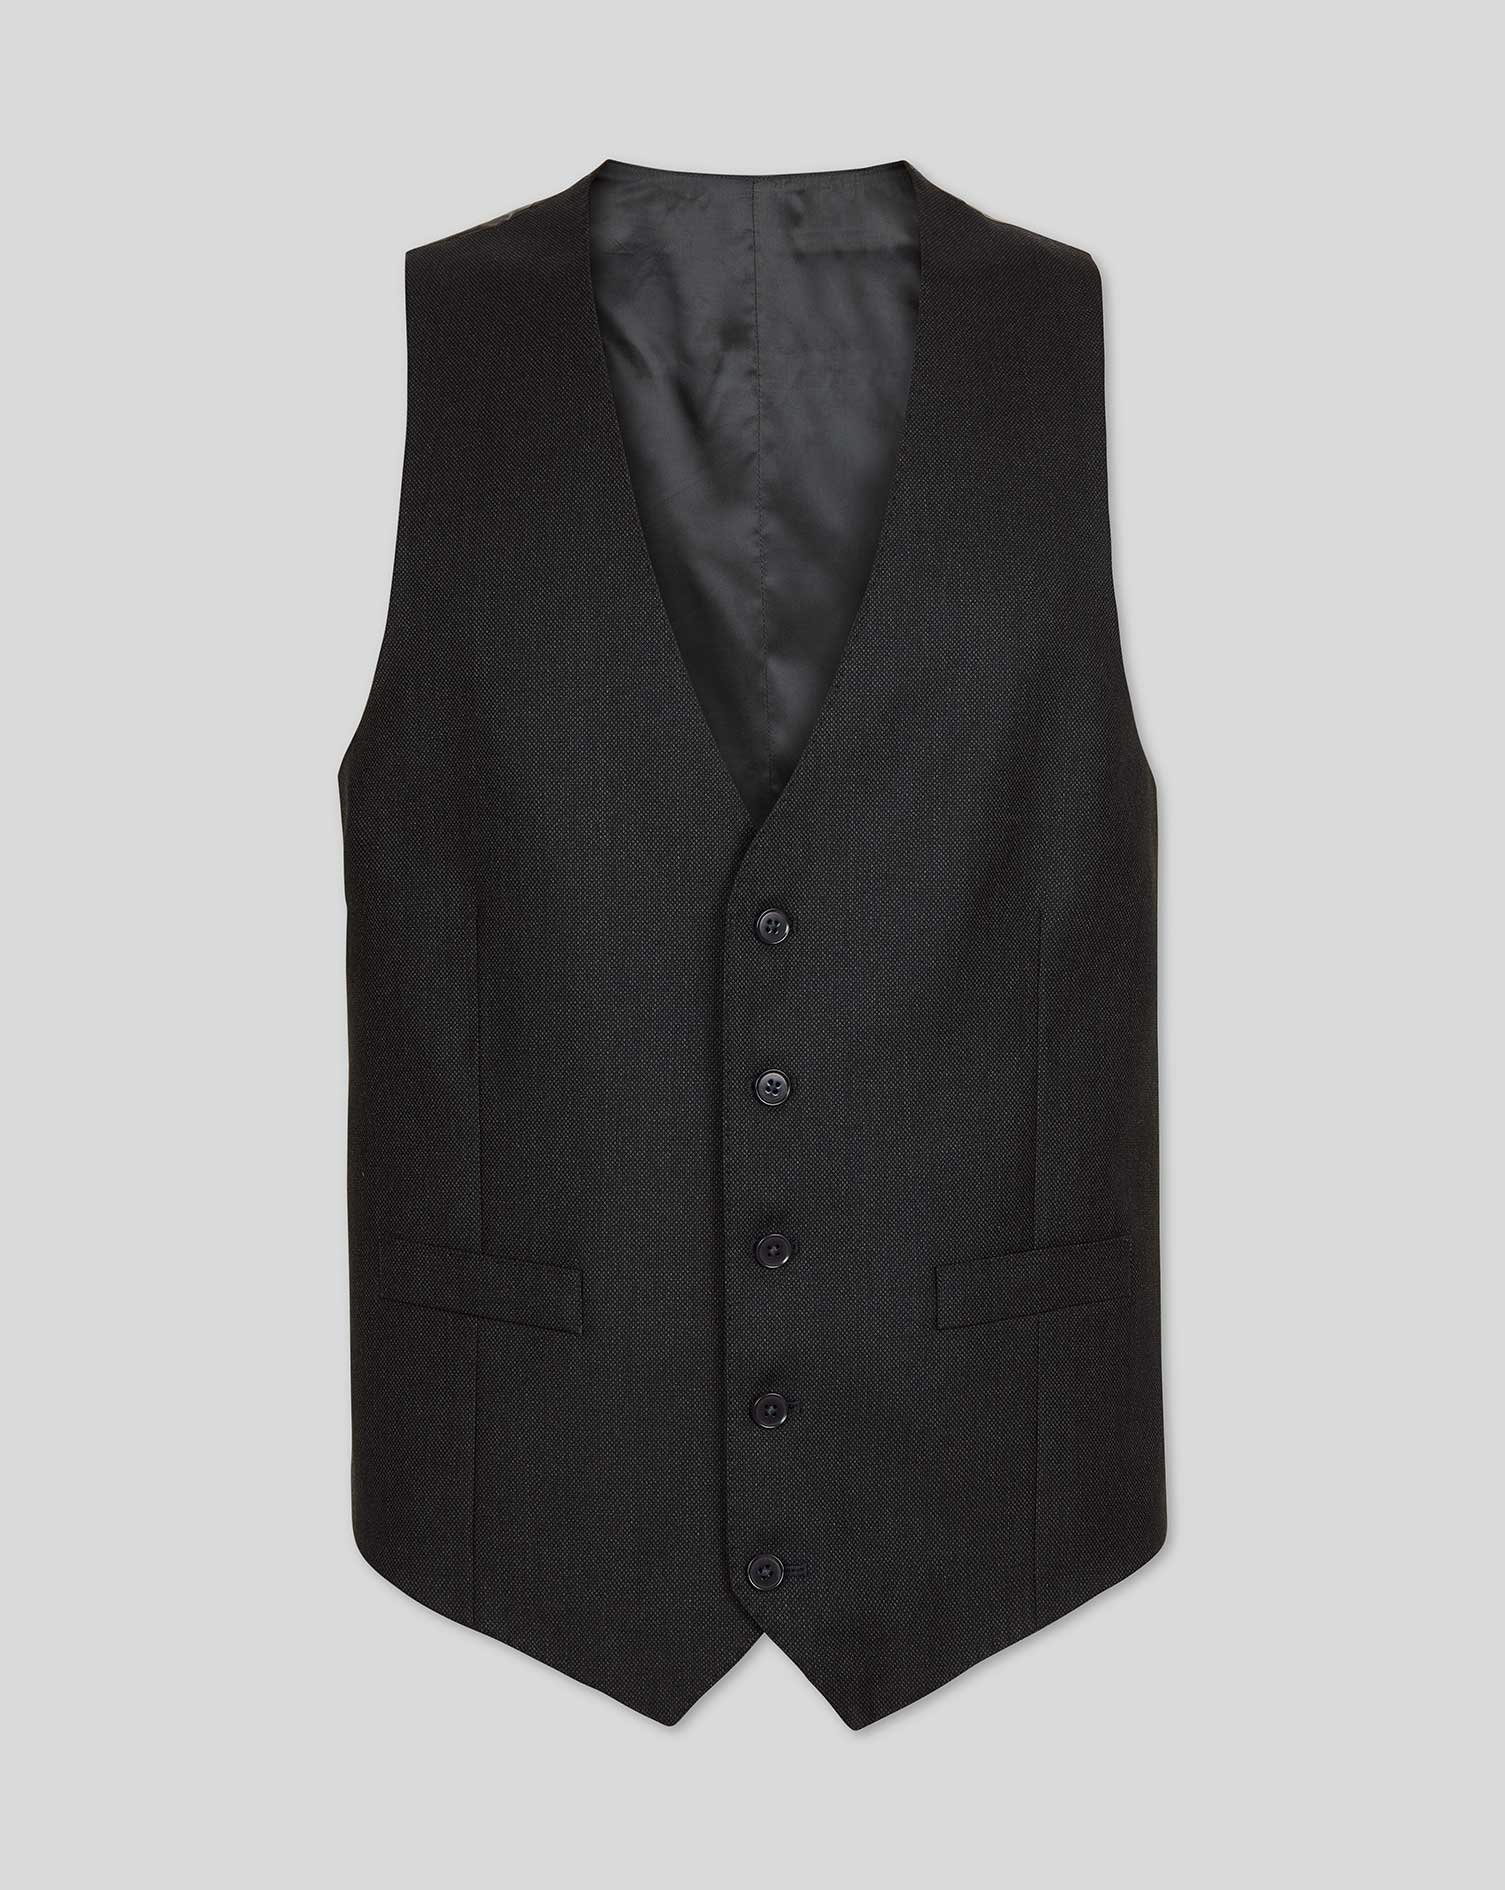 Image of Charles Tyrwhitt Birdseye Travel Suit Wool Waistcoat - Charcoal Size w36 by Charles Tyrwhitt